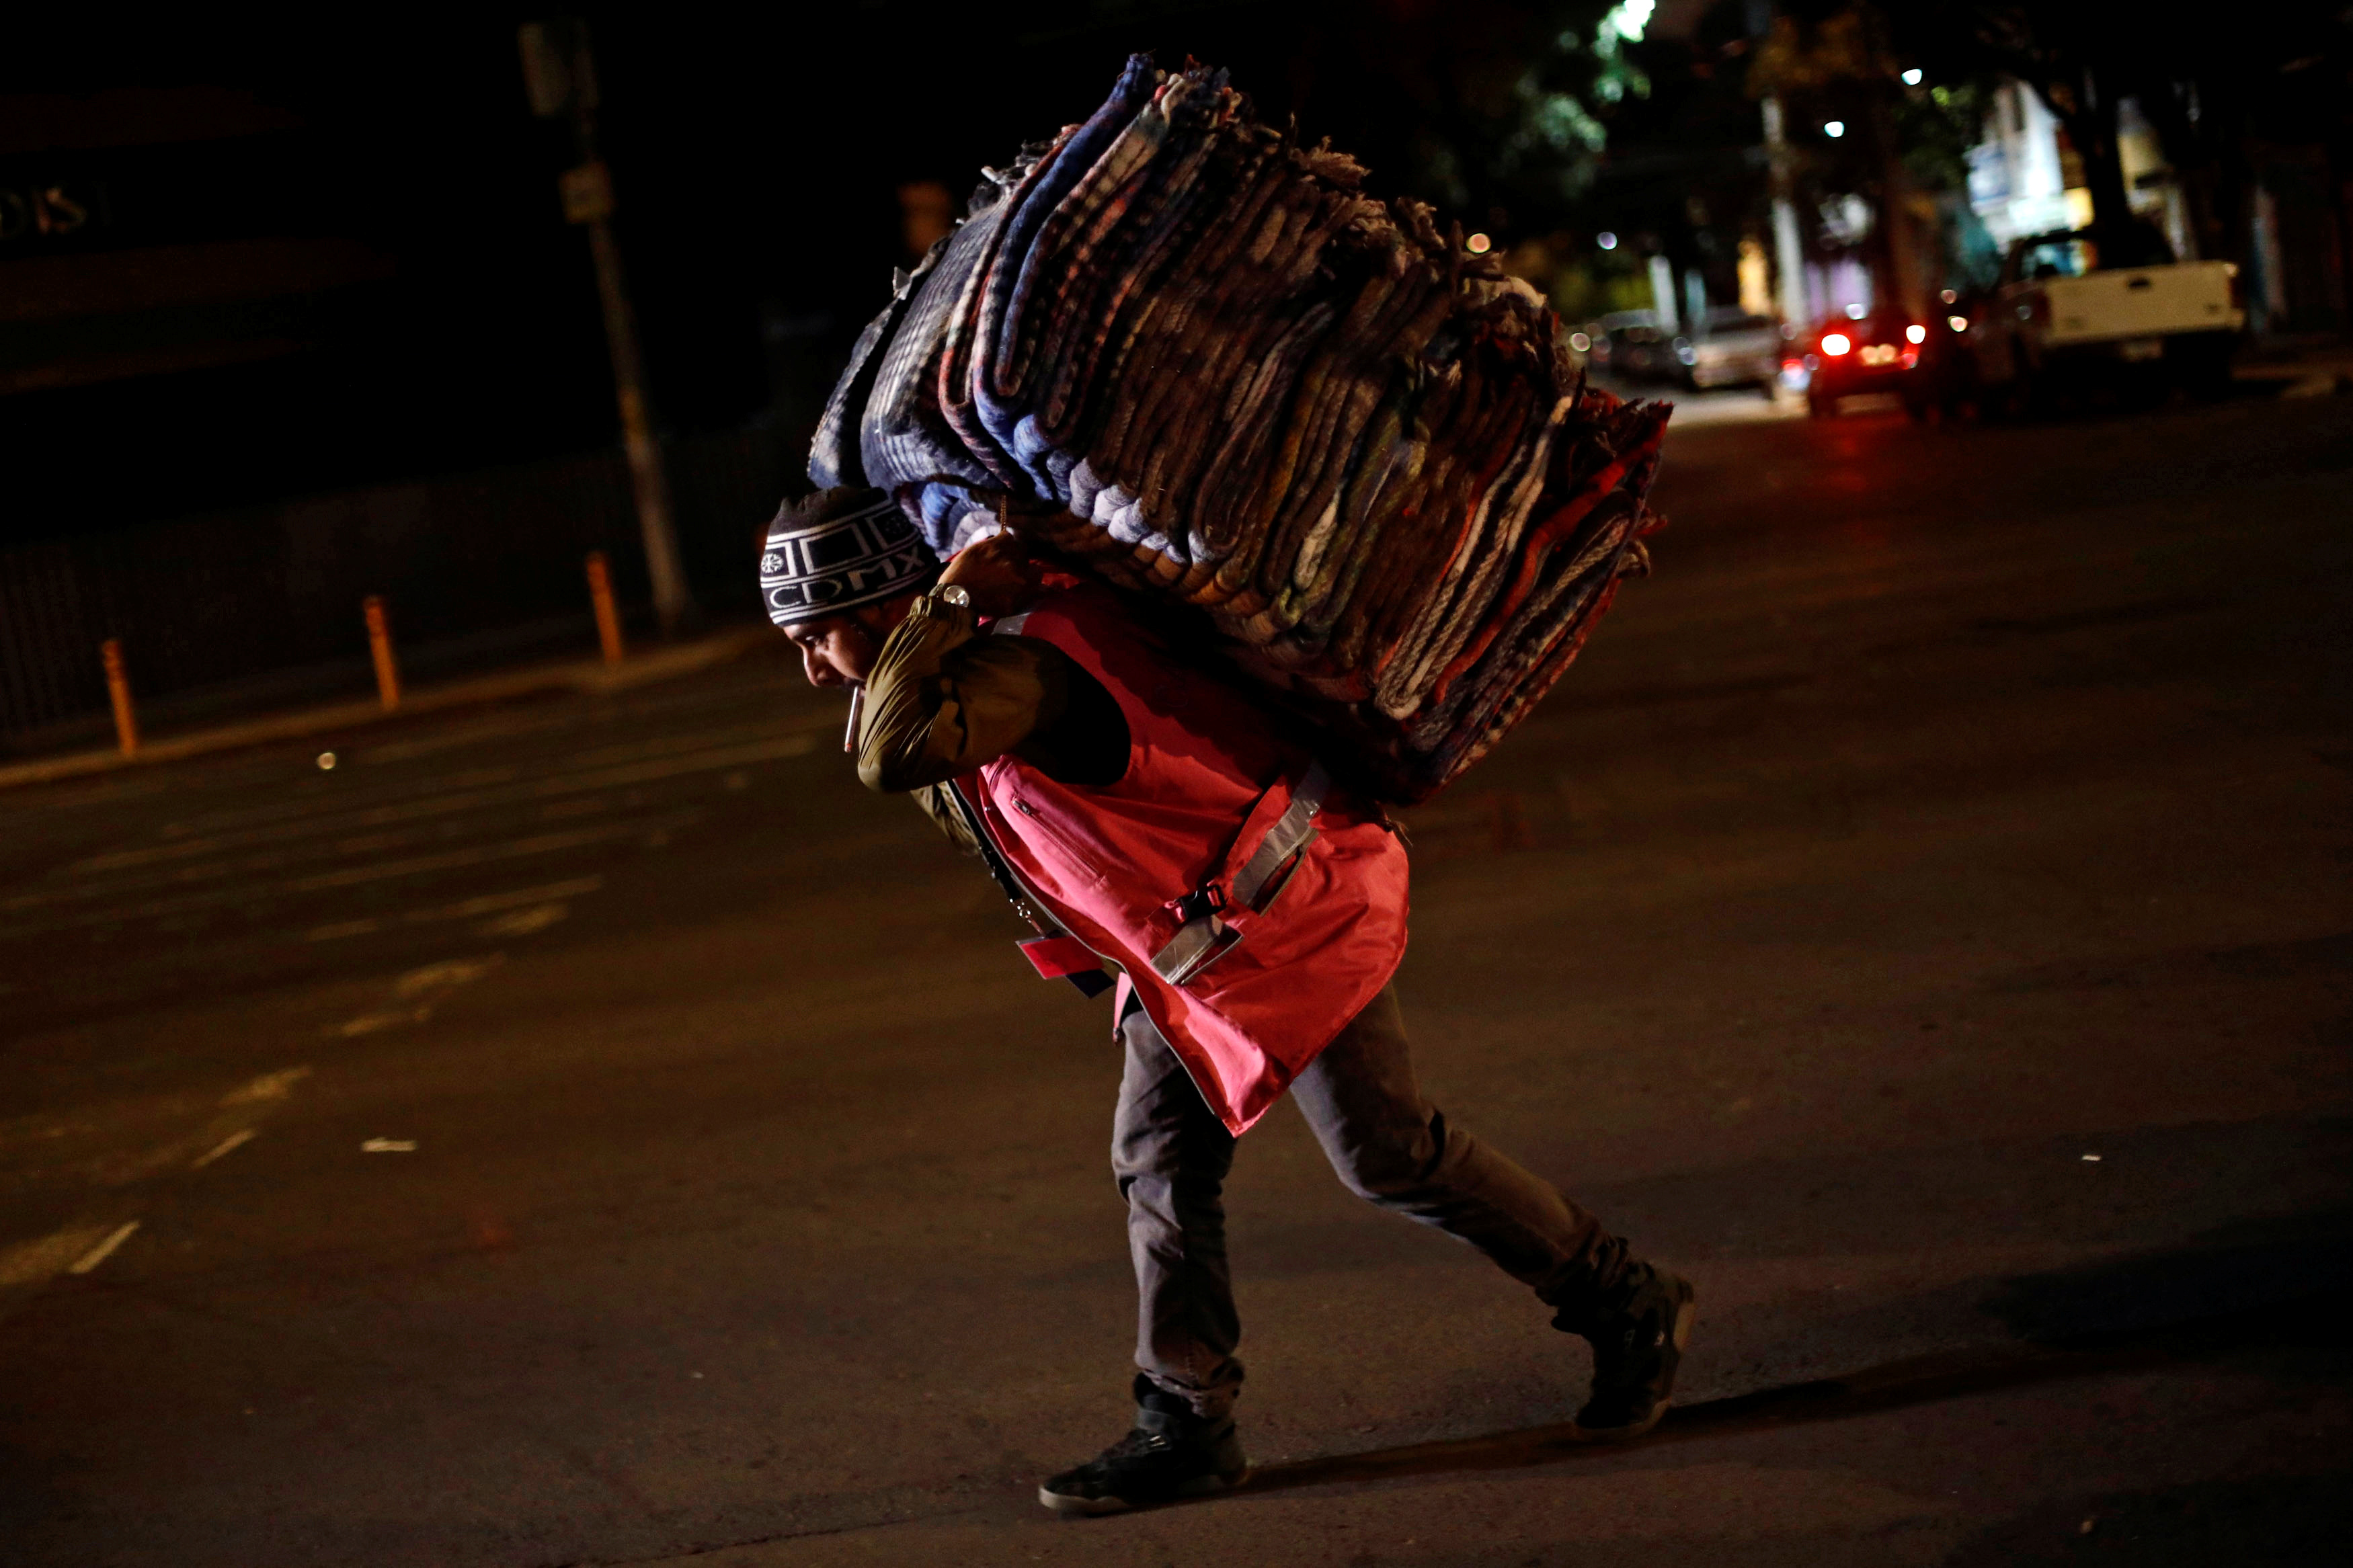 A volunteer carries blankets after an earthquake hit Mexico City, Mexico on Sept. 8, 2017. (REUTERS/Edgard Garrido)